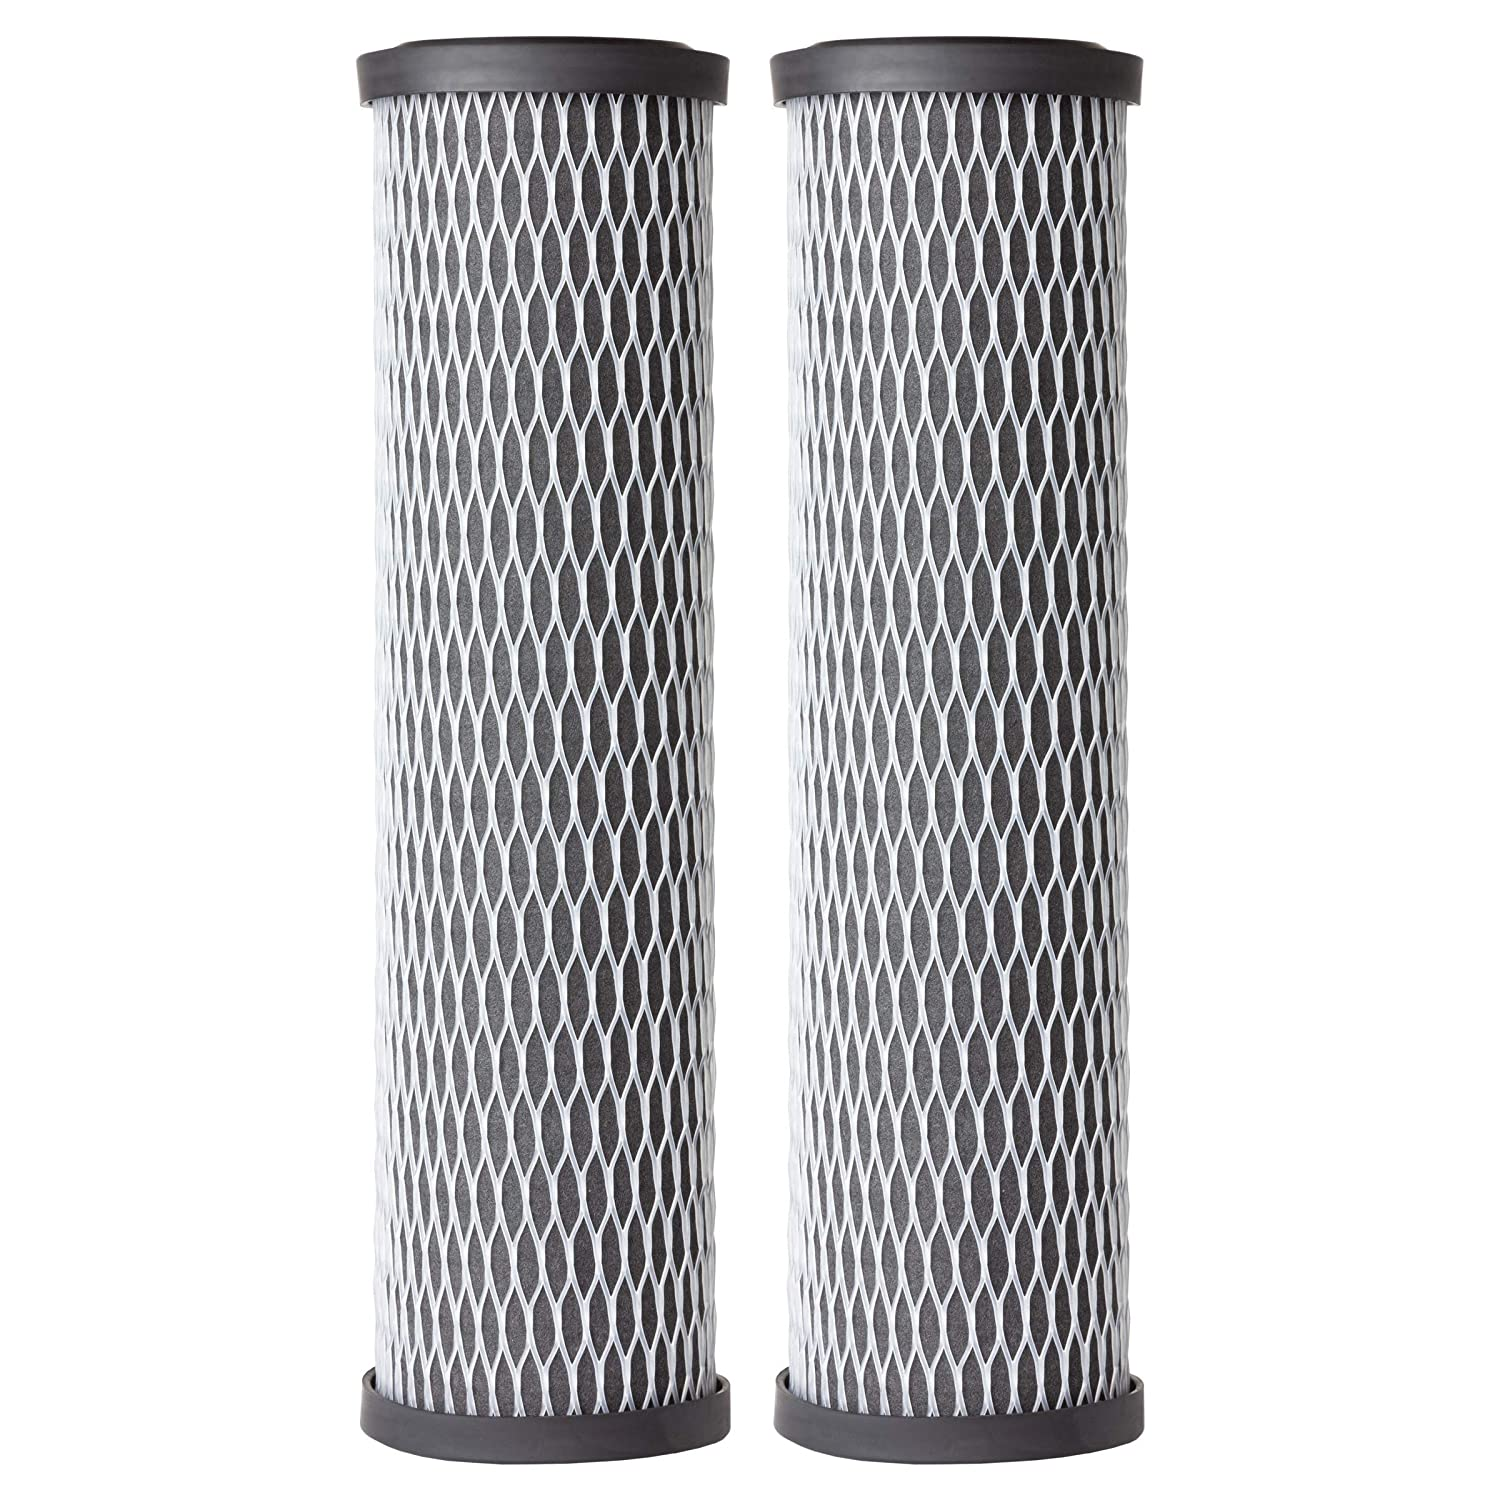 AO Smith AO-WH-PREL-RCP - 2 Pack Carbon Block Sediment Filter Replacement 2.5 Inch - 5 Micron Filtration